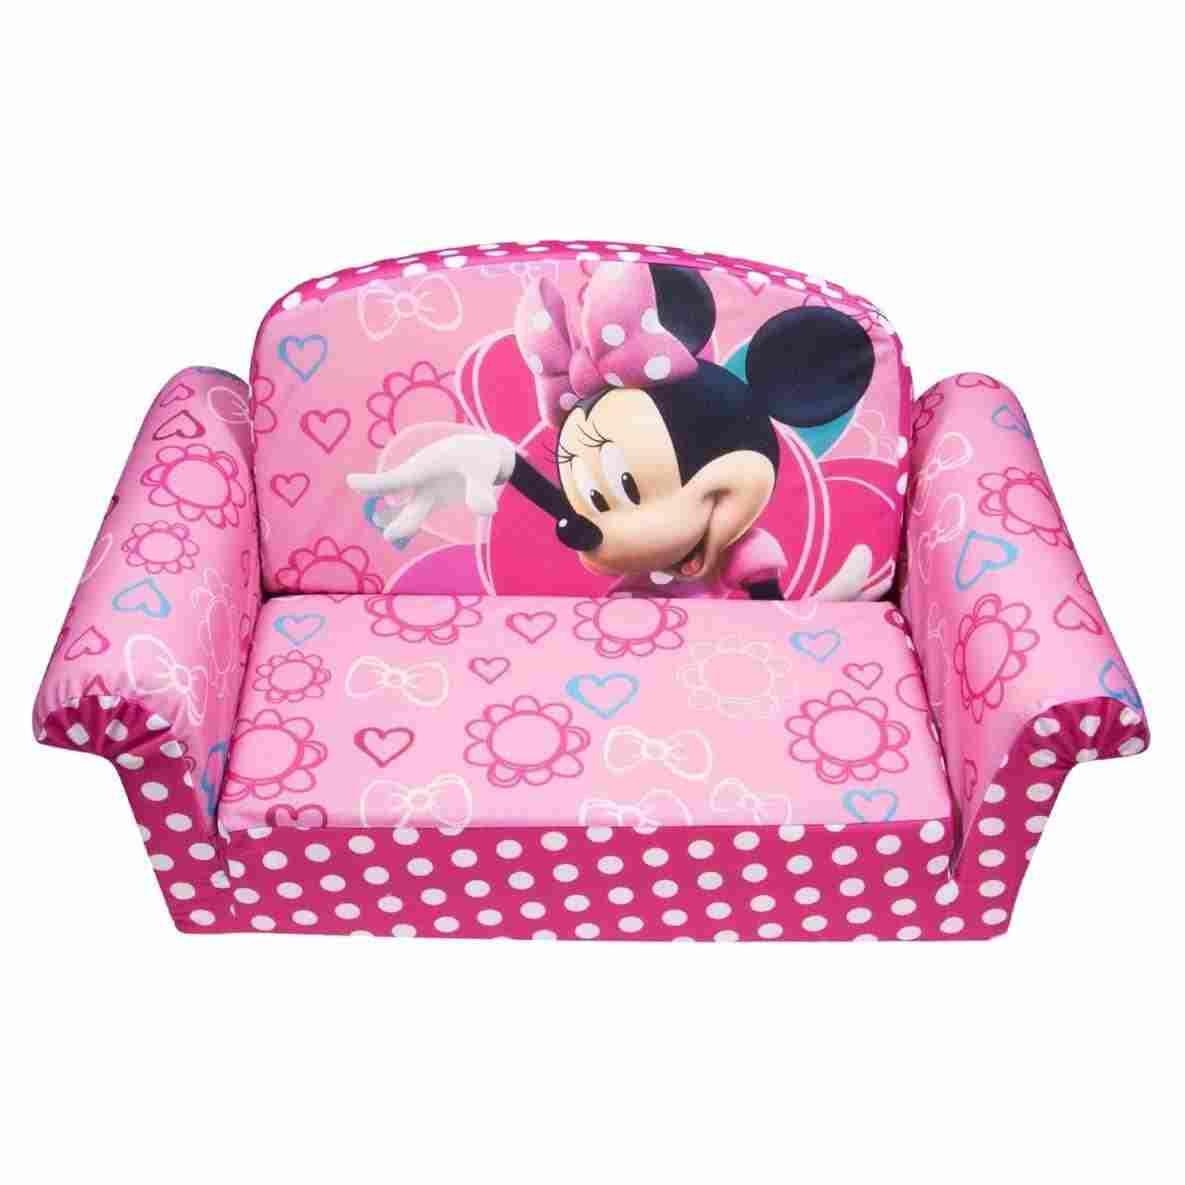 Kids Flip Out Sofa Bed | Sofa And Chair Information In Flip Out Sofa For Kids (Image 12 of 20)